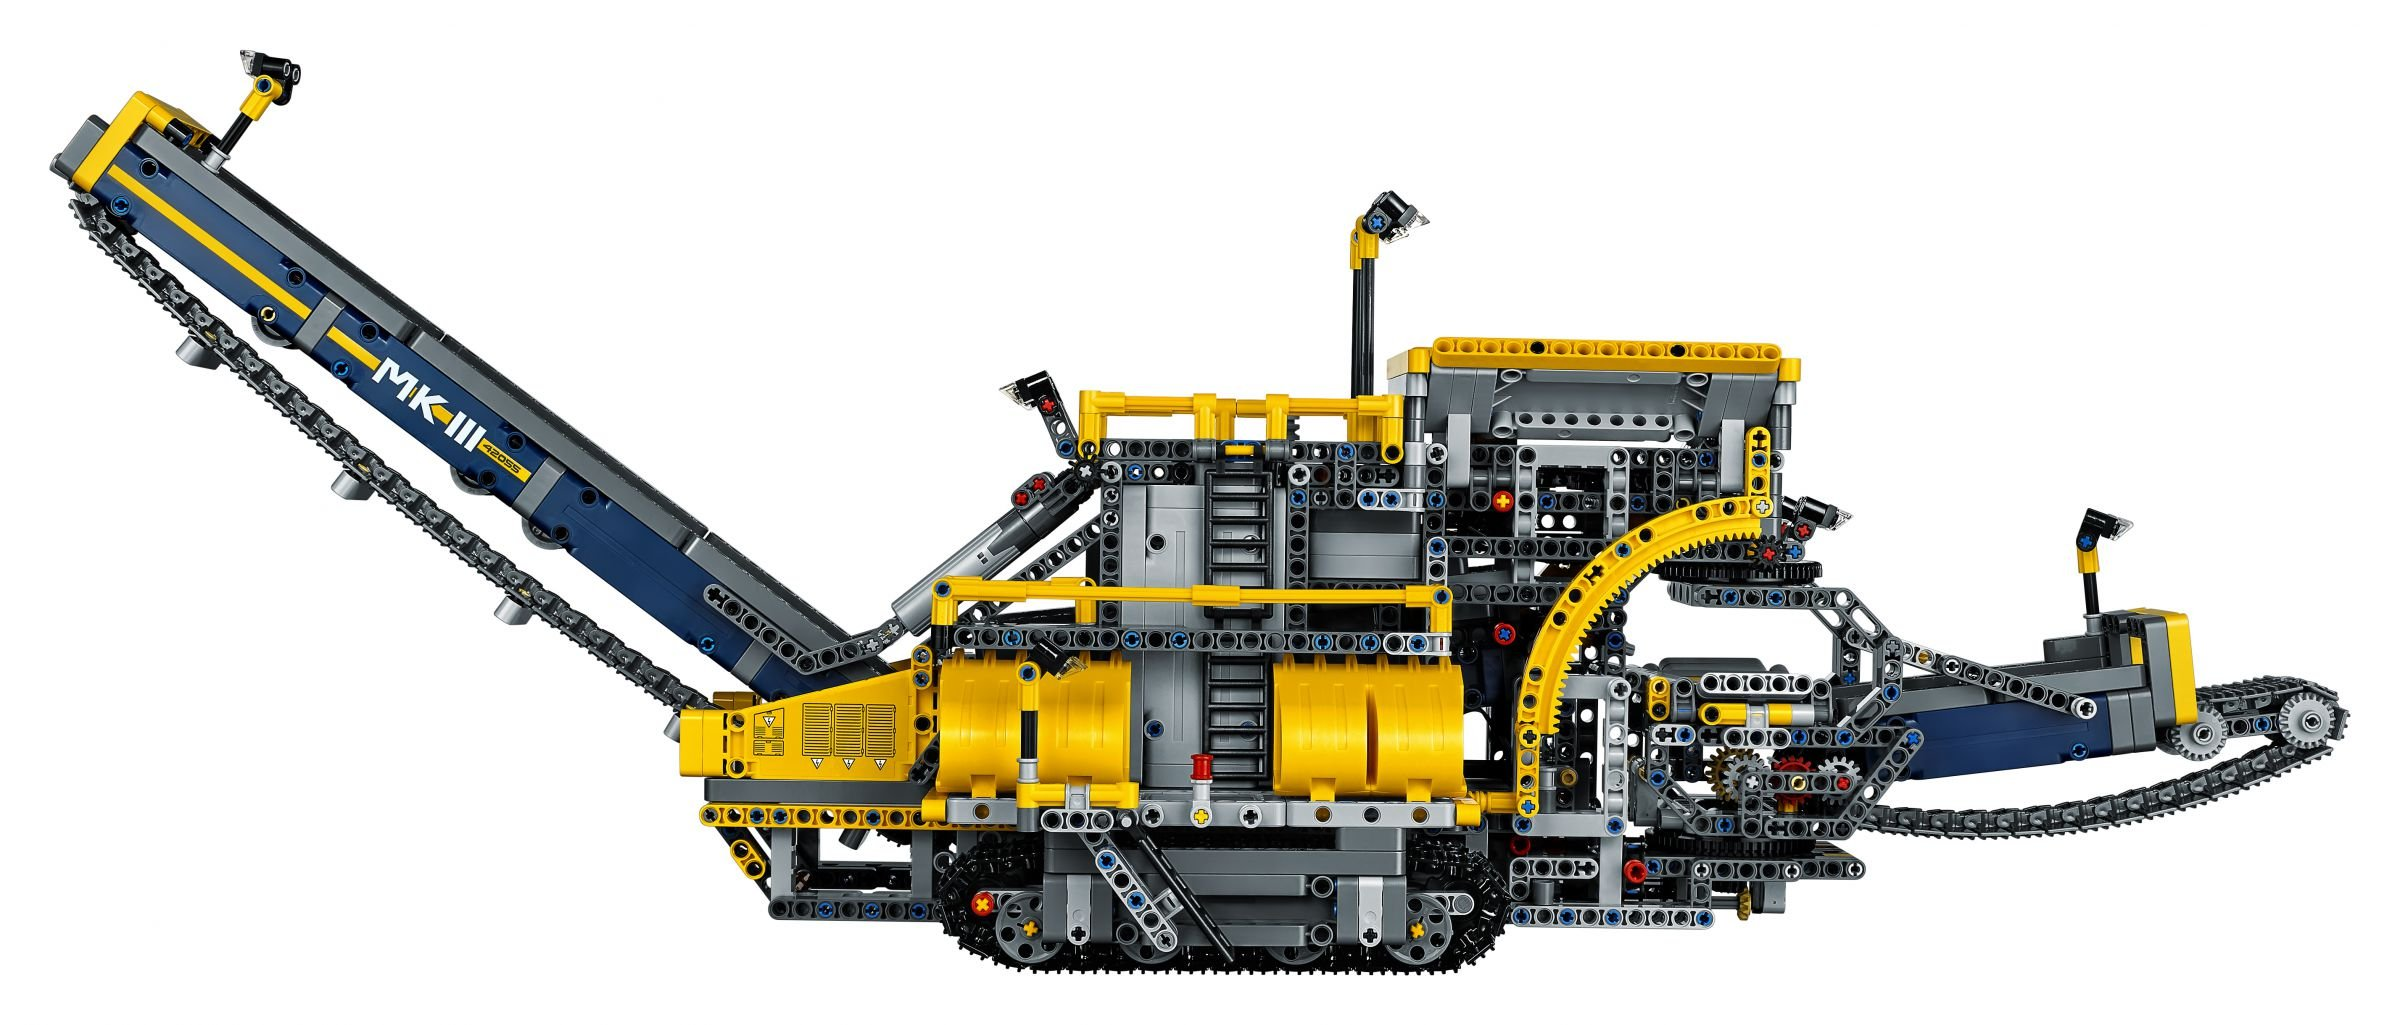 lego 42055 schaufelradbagger technic 2016 bucket wheel excavator brickmerge. Black Bedroom Furniture Sets. Home Design Ideas